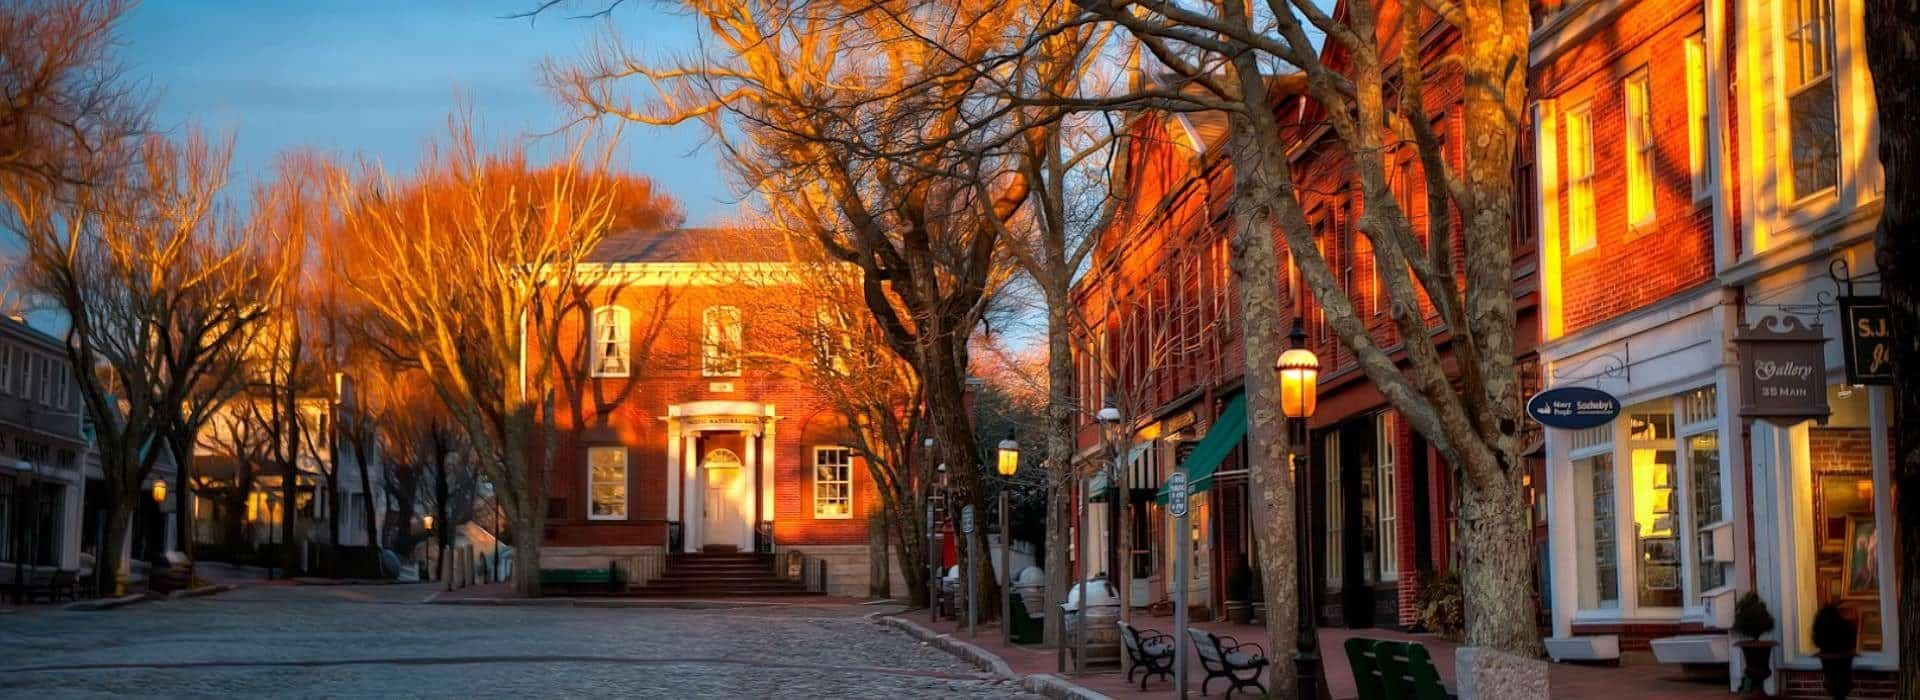 Store fronts in historical red bricked buildings with a cobblestone street surrounded by trees without leaves